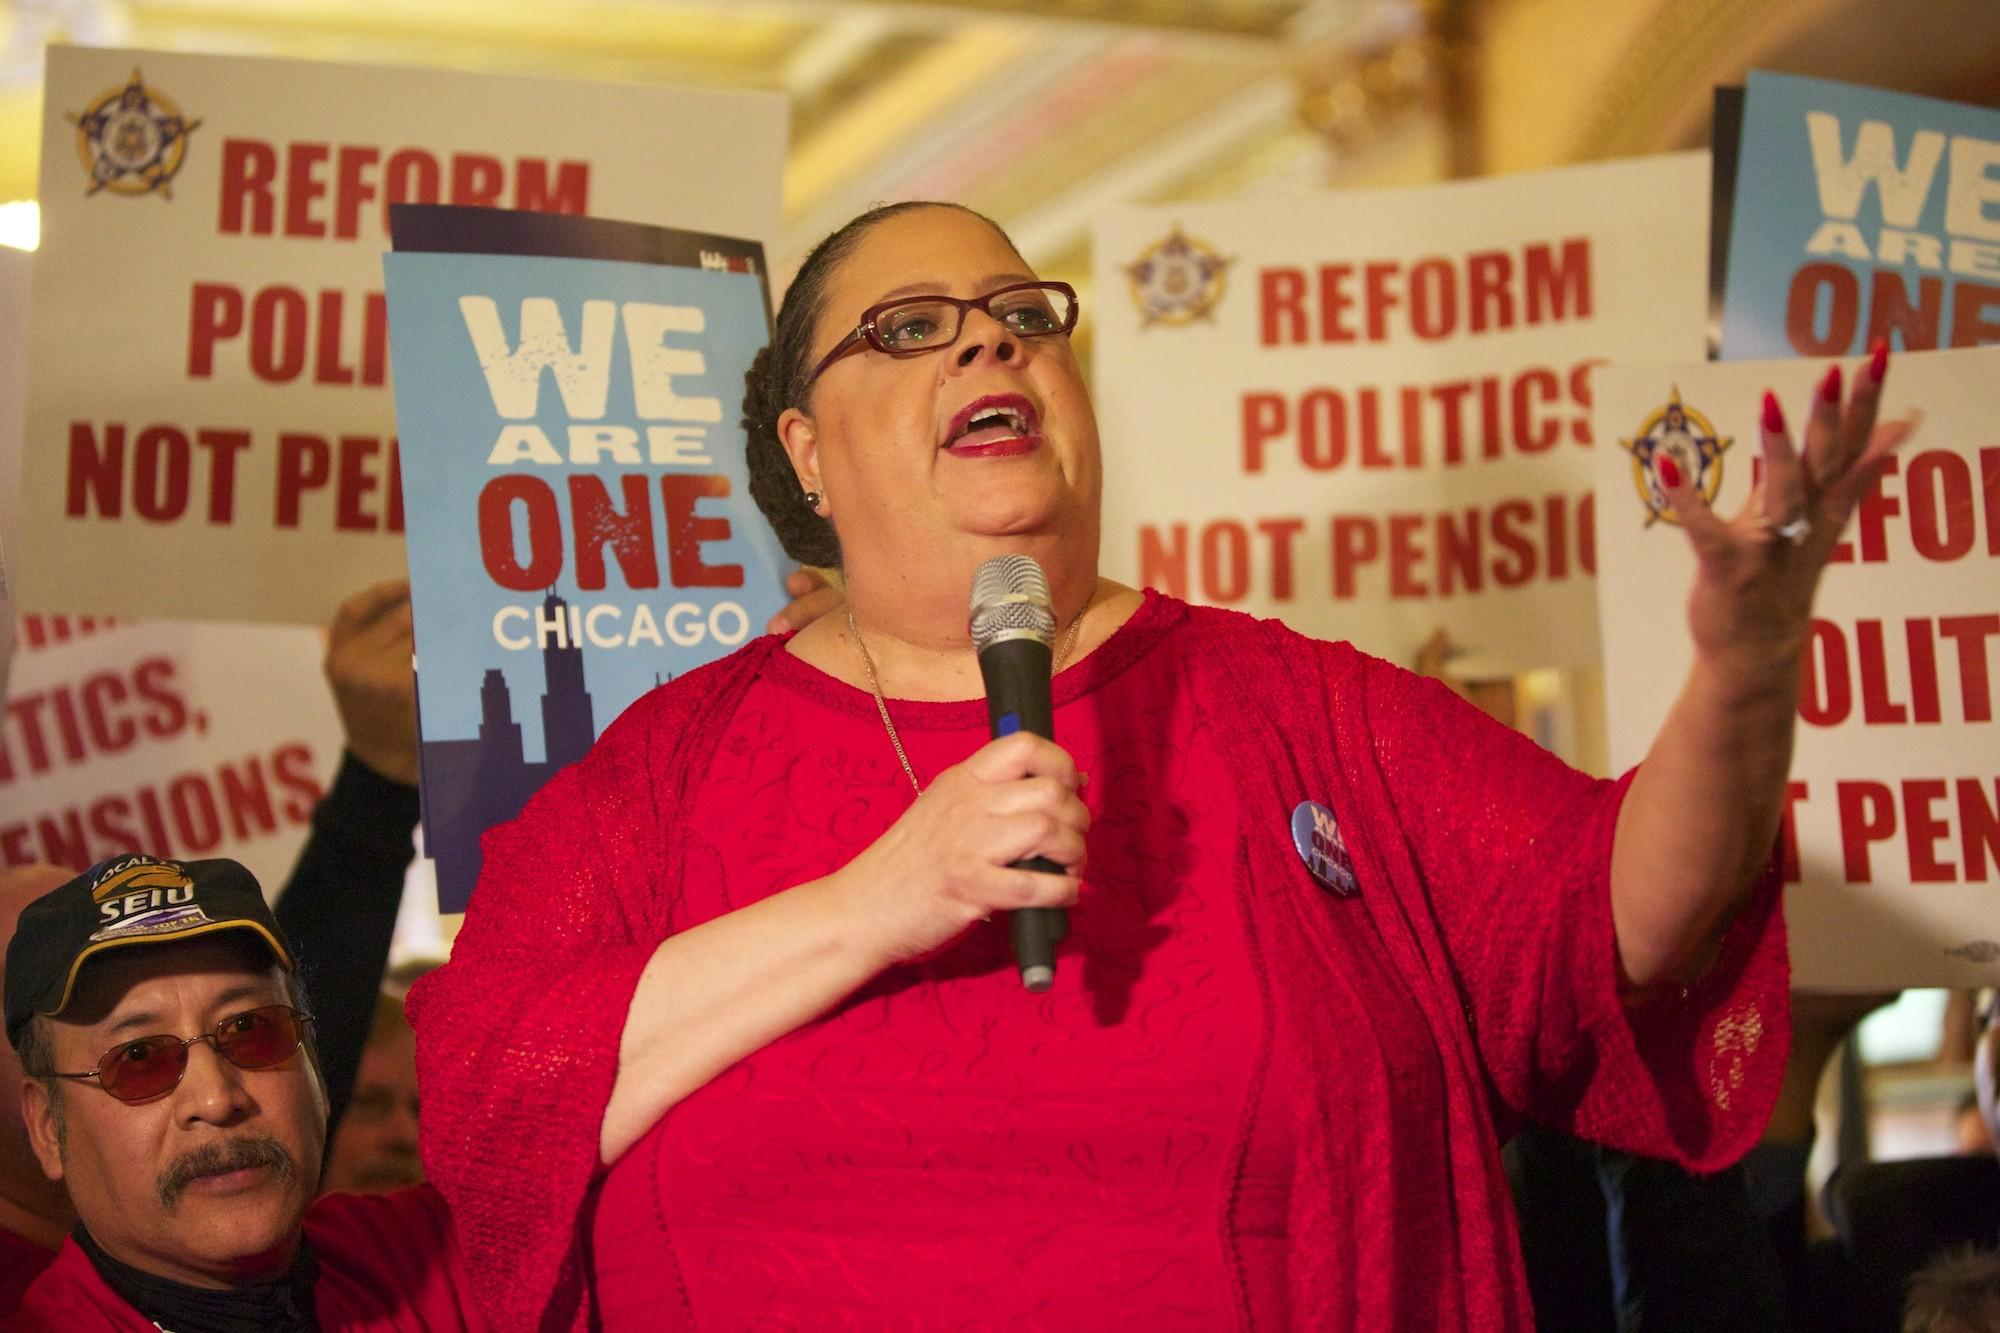 Chicago Teachers Union President Karen Lewis speaks to a crowd of union supporters during a rally on Feb. 19 at the Illinois State Capitol in Springfield, Illinois.